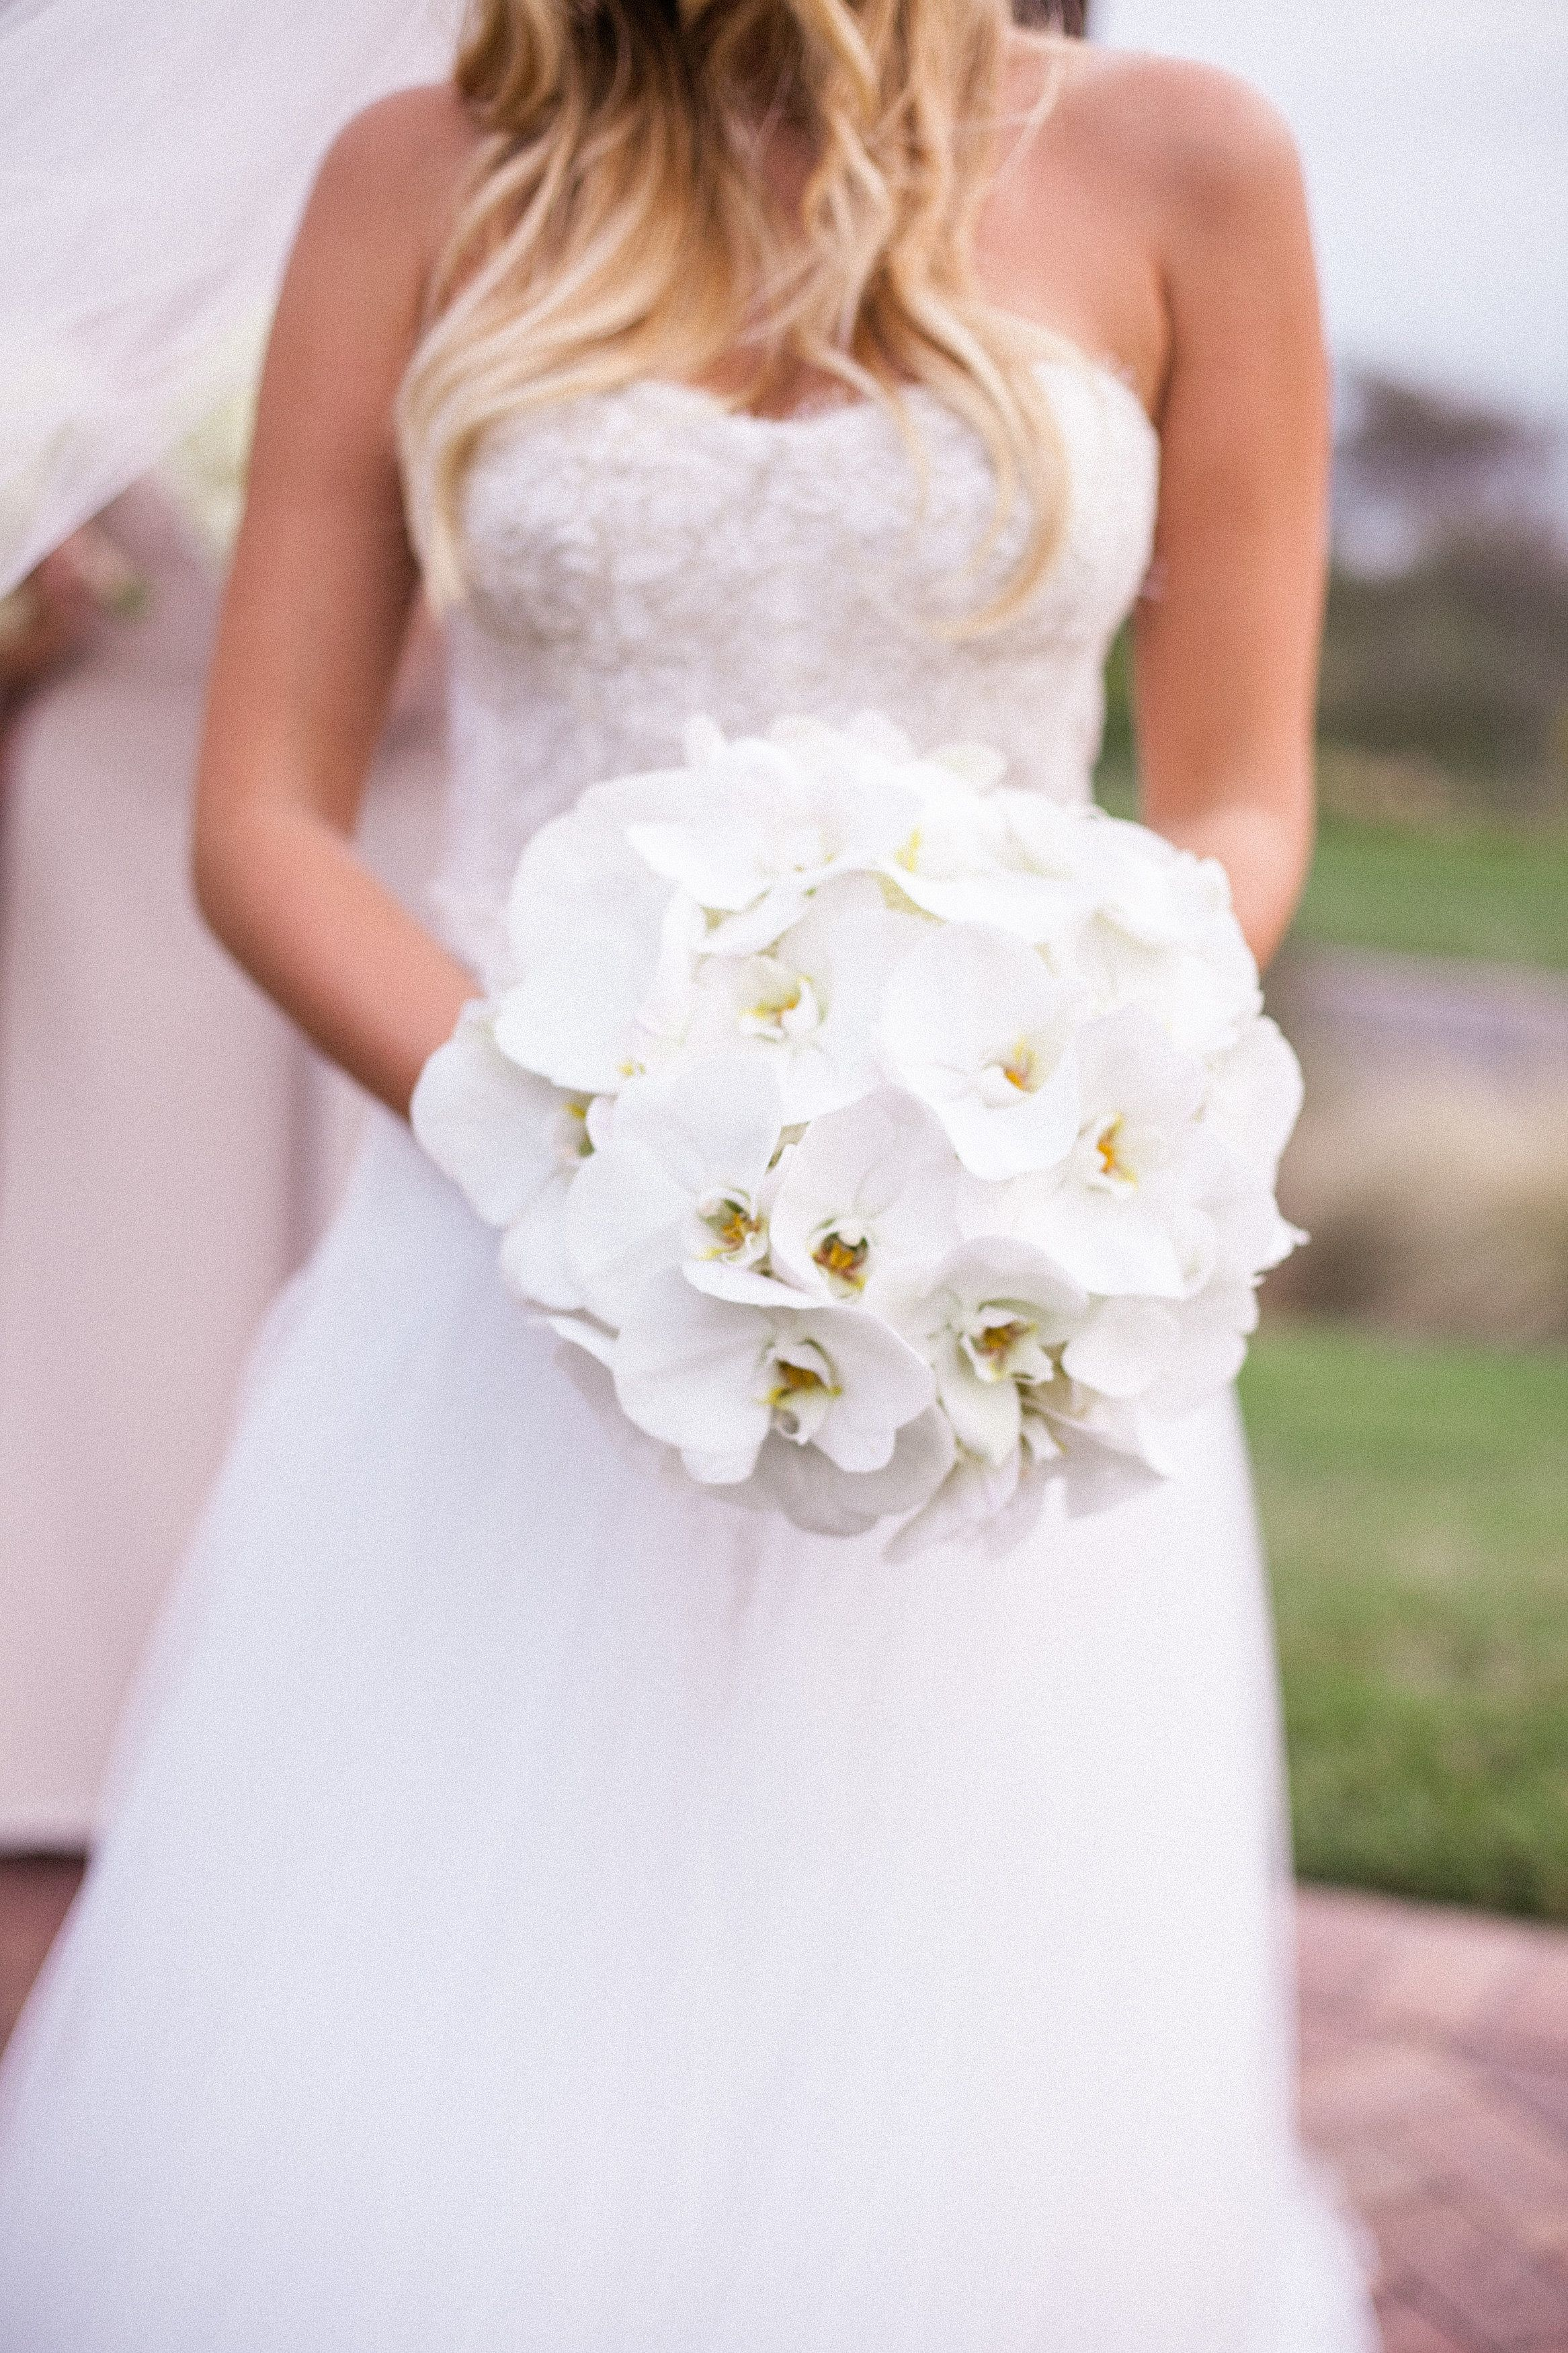 All white orchids #bouquet Photography: Jasmine Star - jasmine-star.com